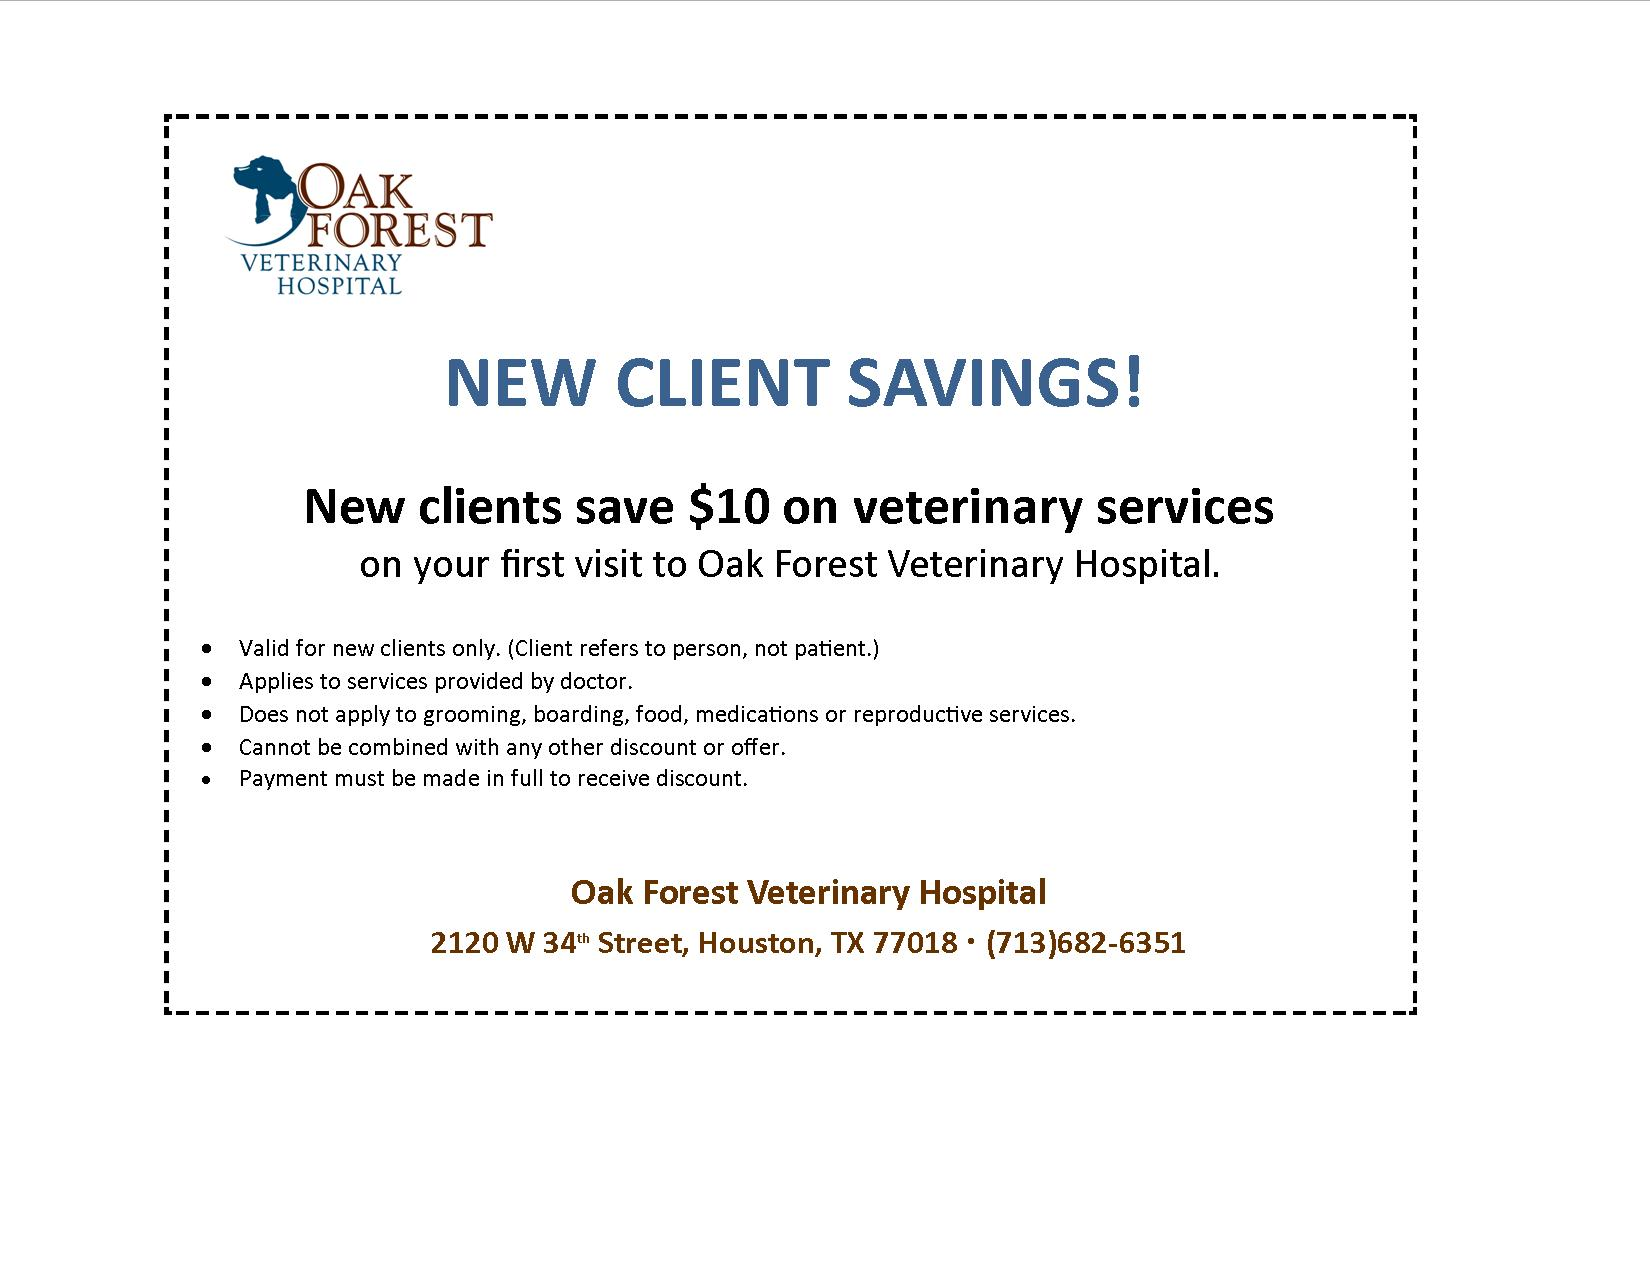 Oak Forest Veterinary Hospital New Client Resources | Oak Forest ...